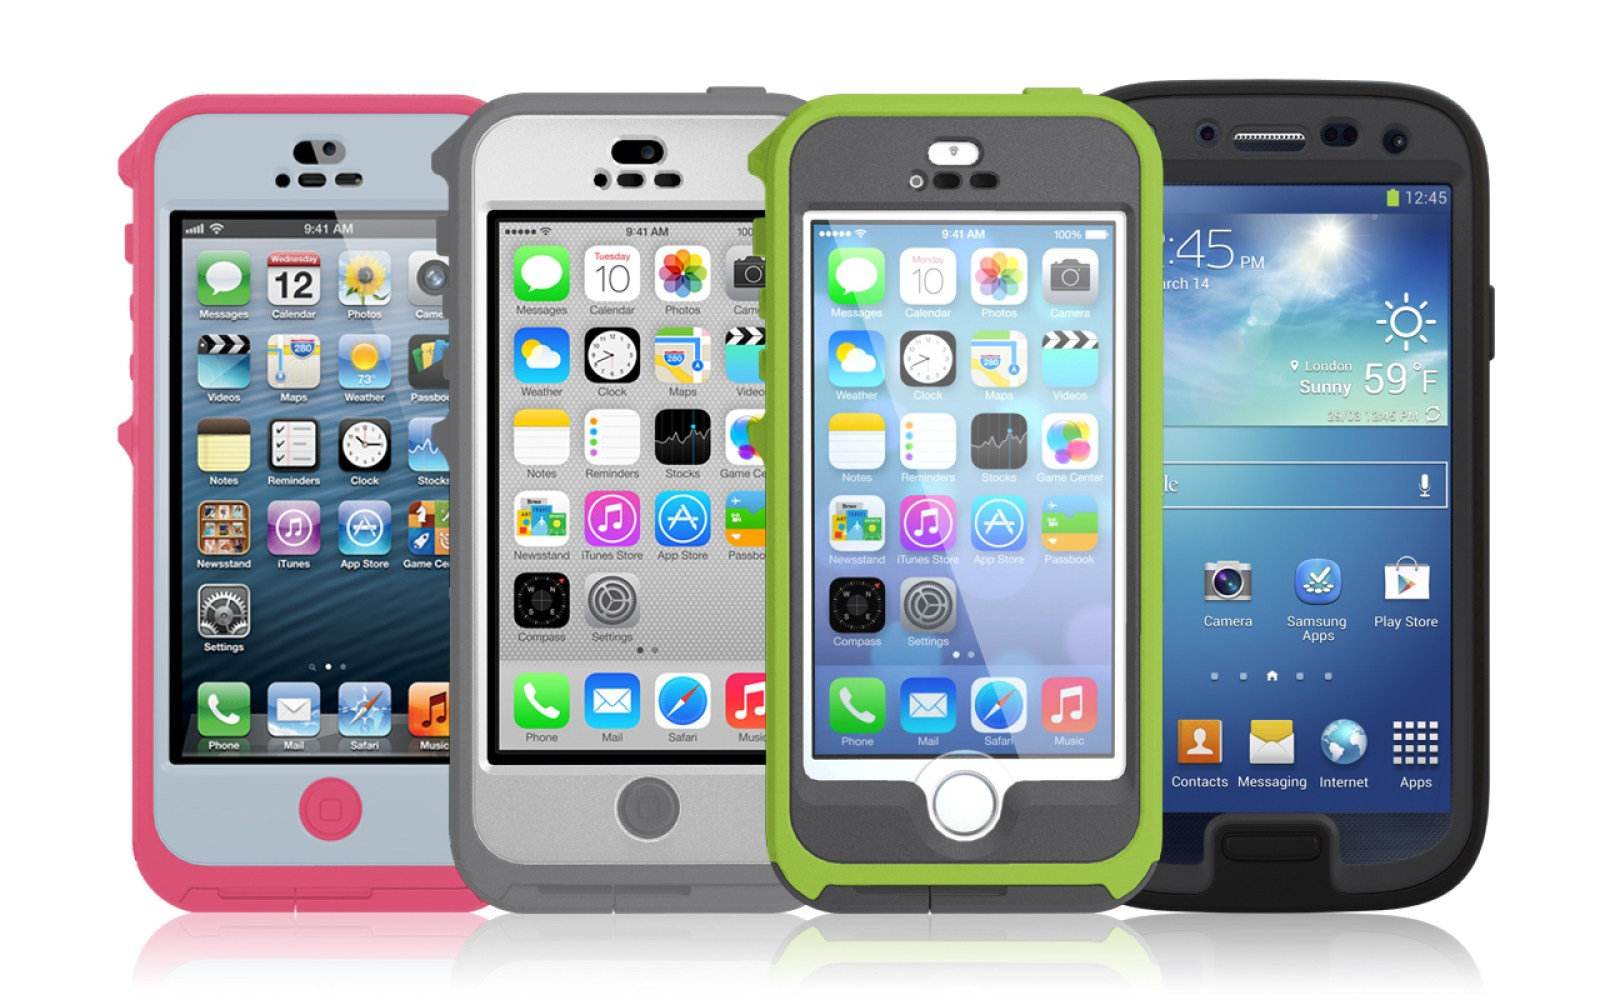 OtterBox releases new Preserver Series waterproof cases for the iPhone 5/5s/5c